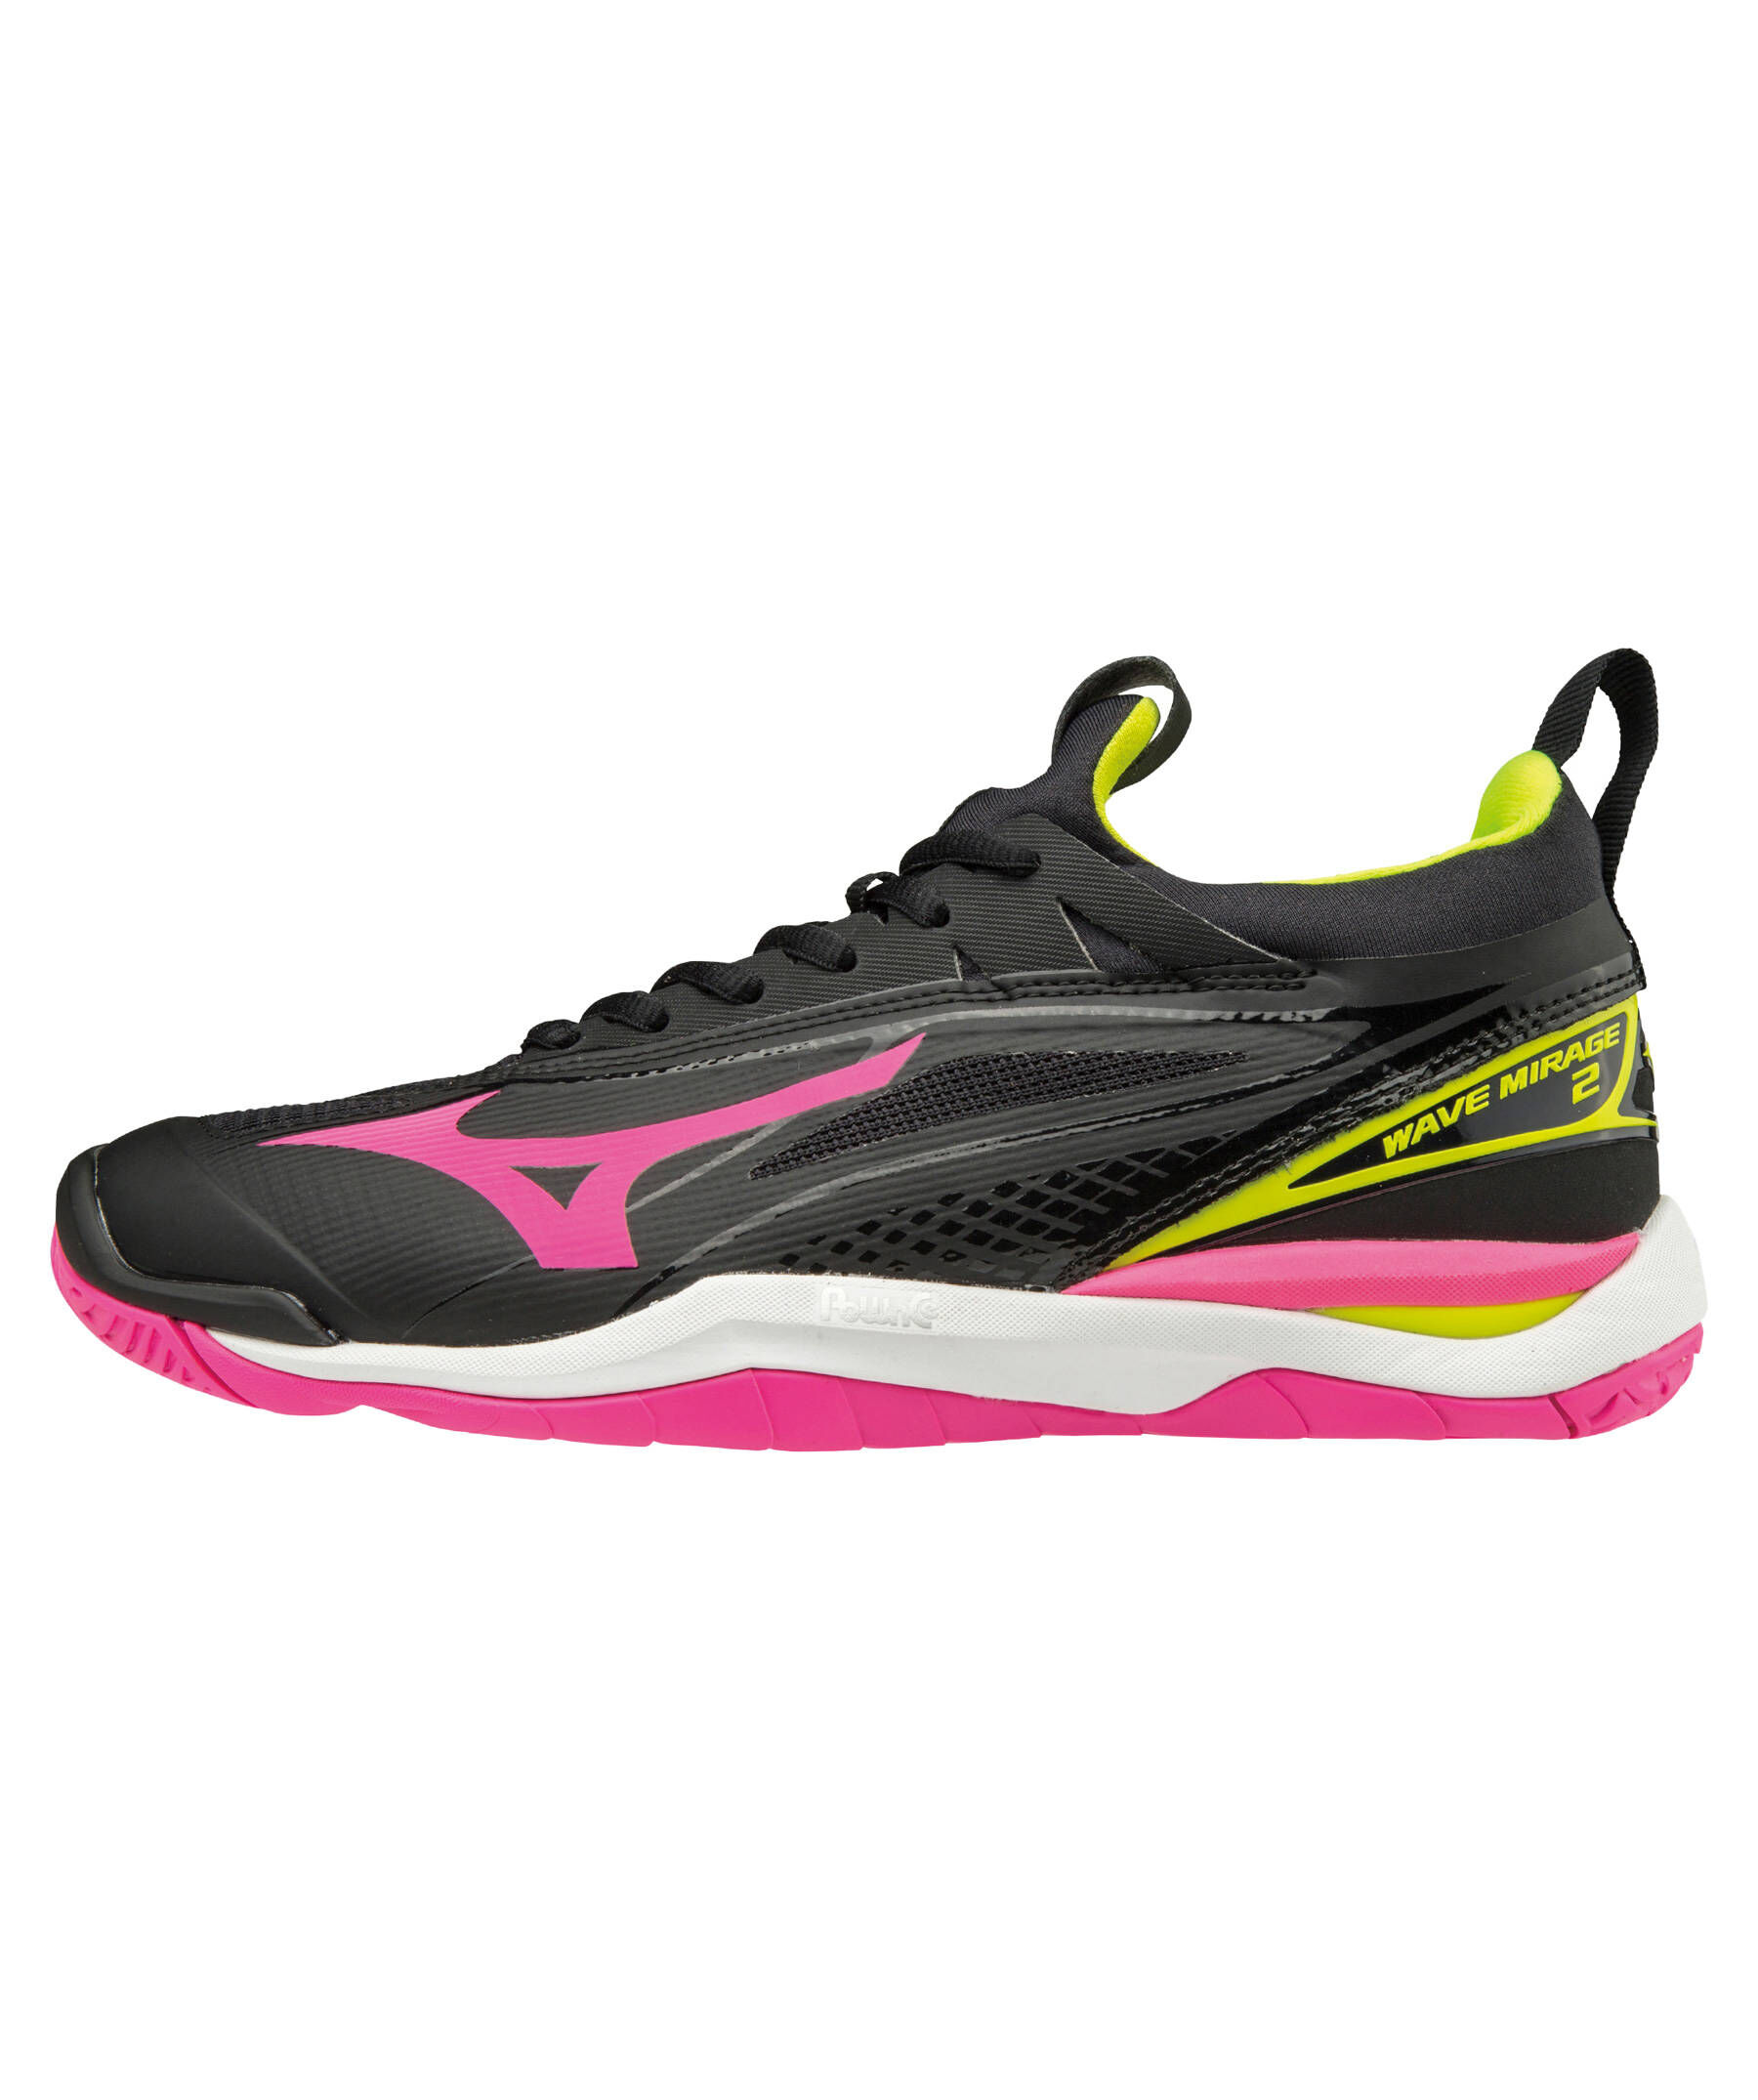 Asics DynaFlyte 3 SOUND Lady Laufschuhe creamfeather